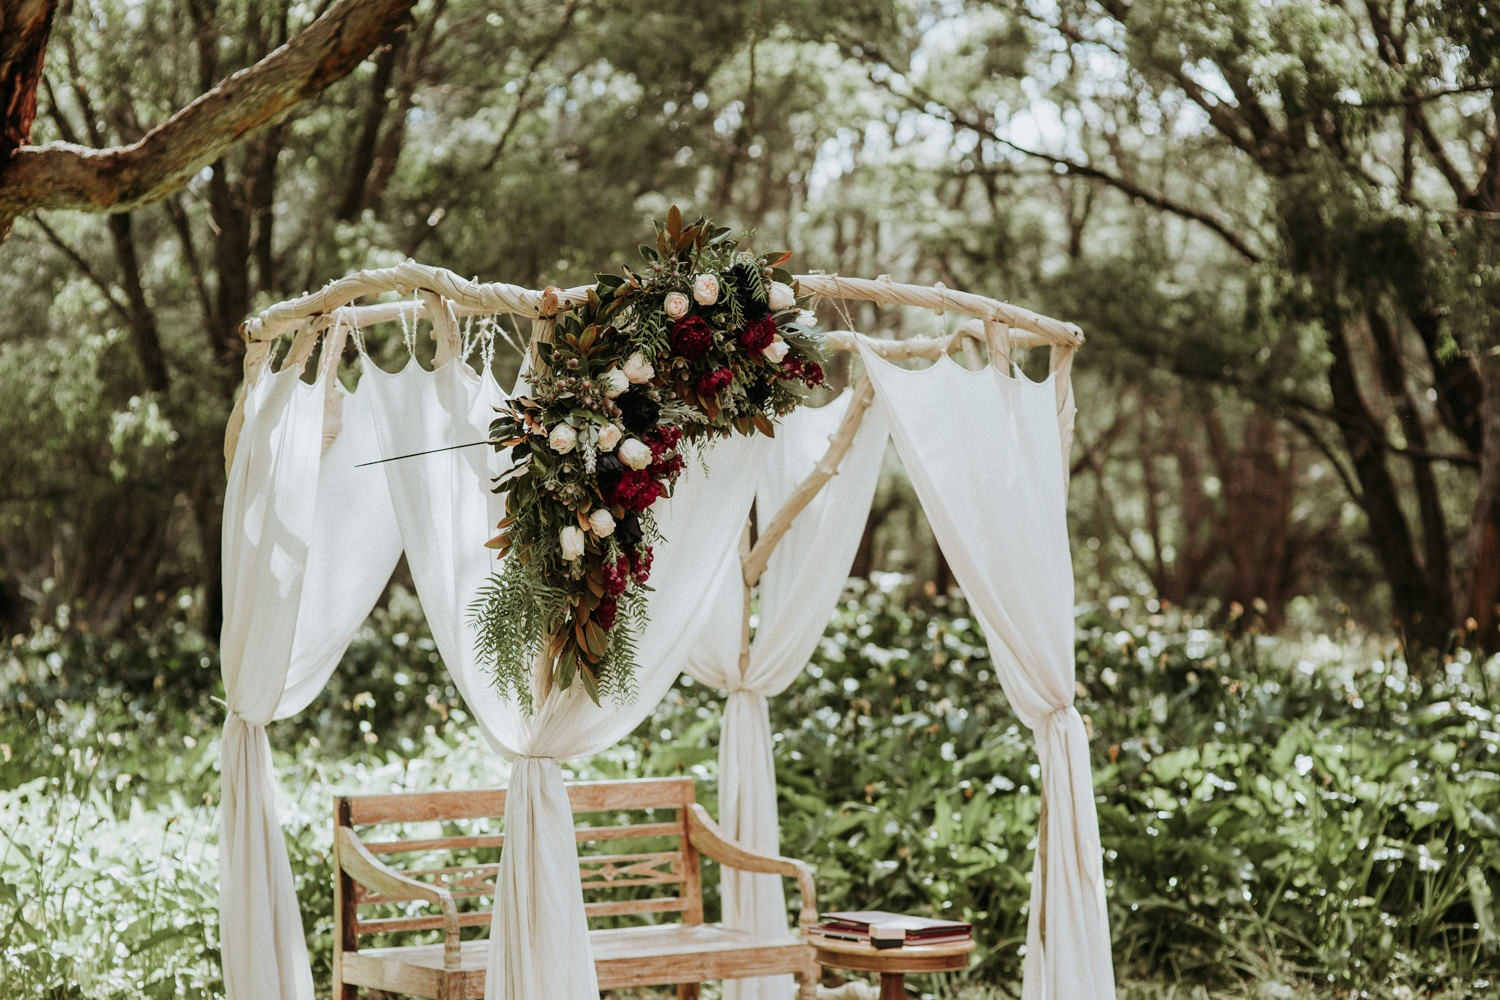 Byron Bay Wedding - Ceremony Details-Wooden Arbour